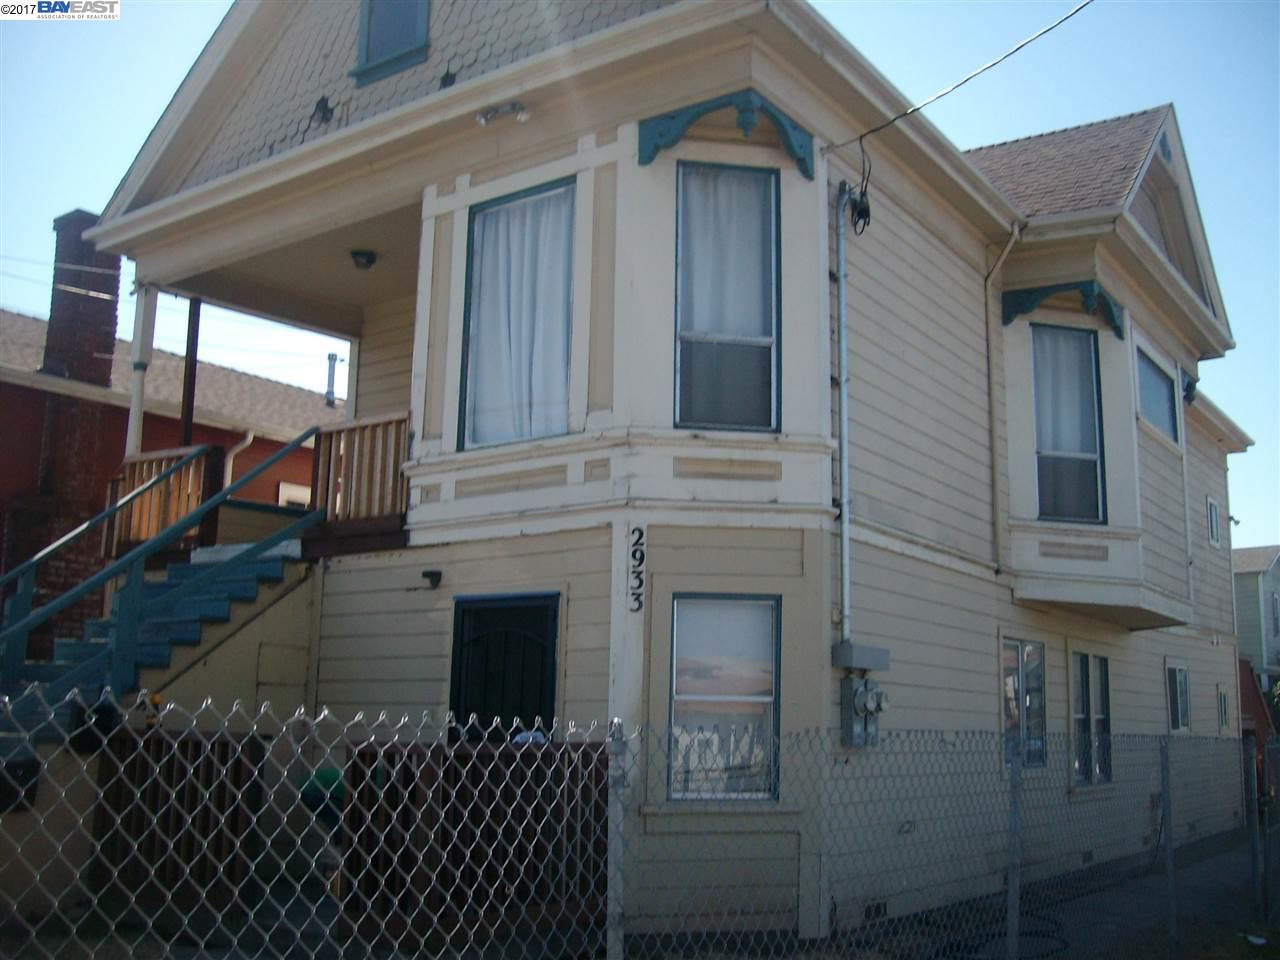 Multi-Family Home for Rent at 2933 Linden Street 2933 Linden Street Oakland, California 94608 United States